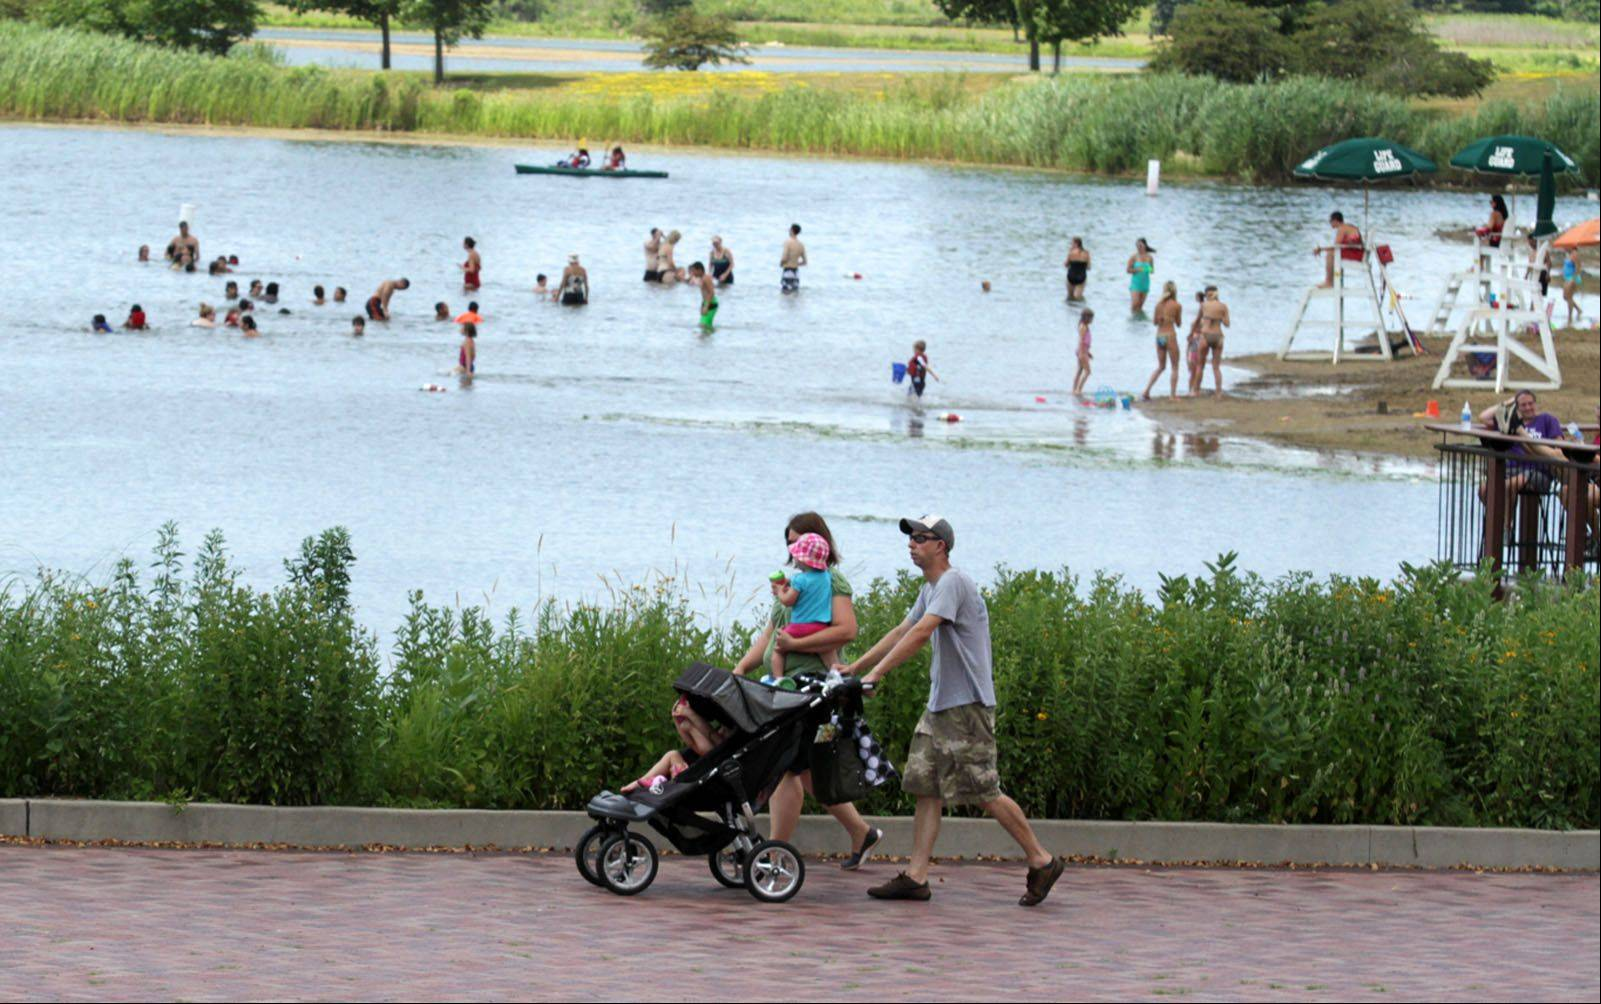 Independence Grove Forest Preserve, which includes a swimming beach, reopened Saturday after being closed for three days because of a bomb threat.